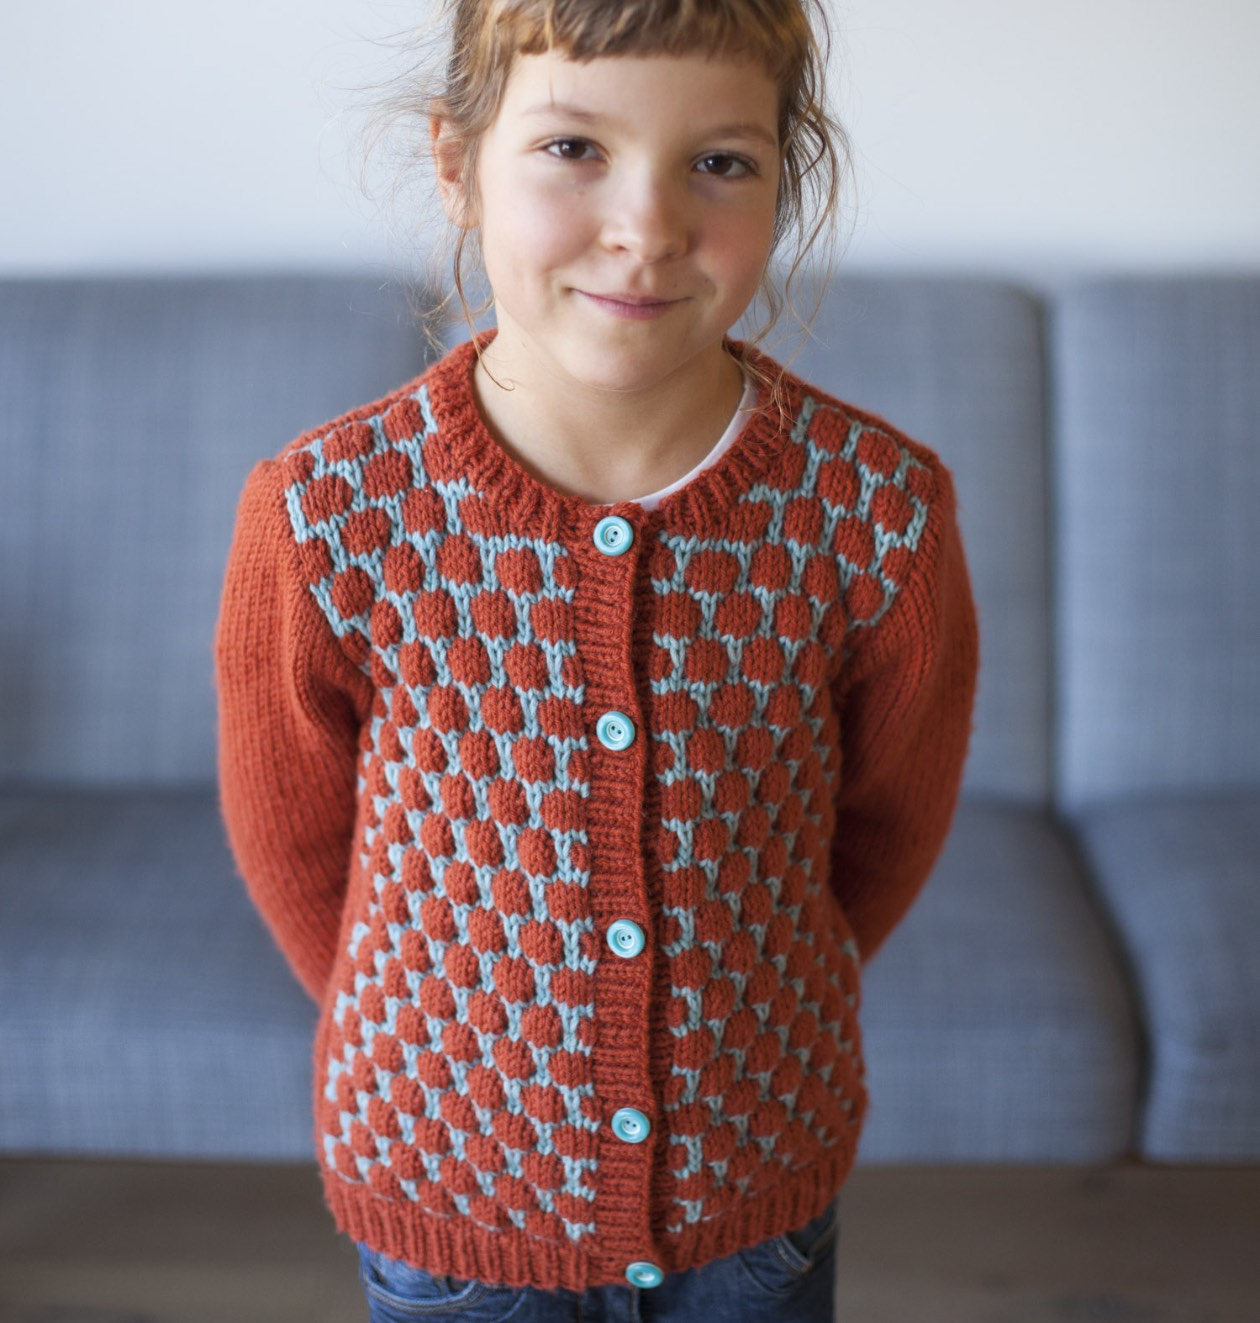 Dadirri Cardigan knitting pattern for kids | Compagnie-M